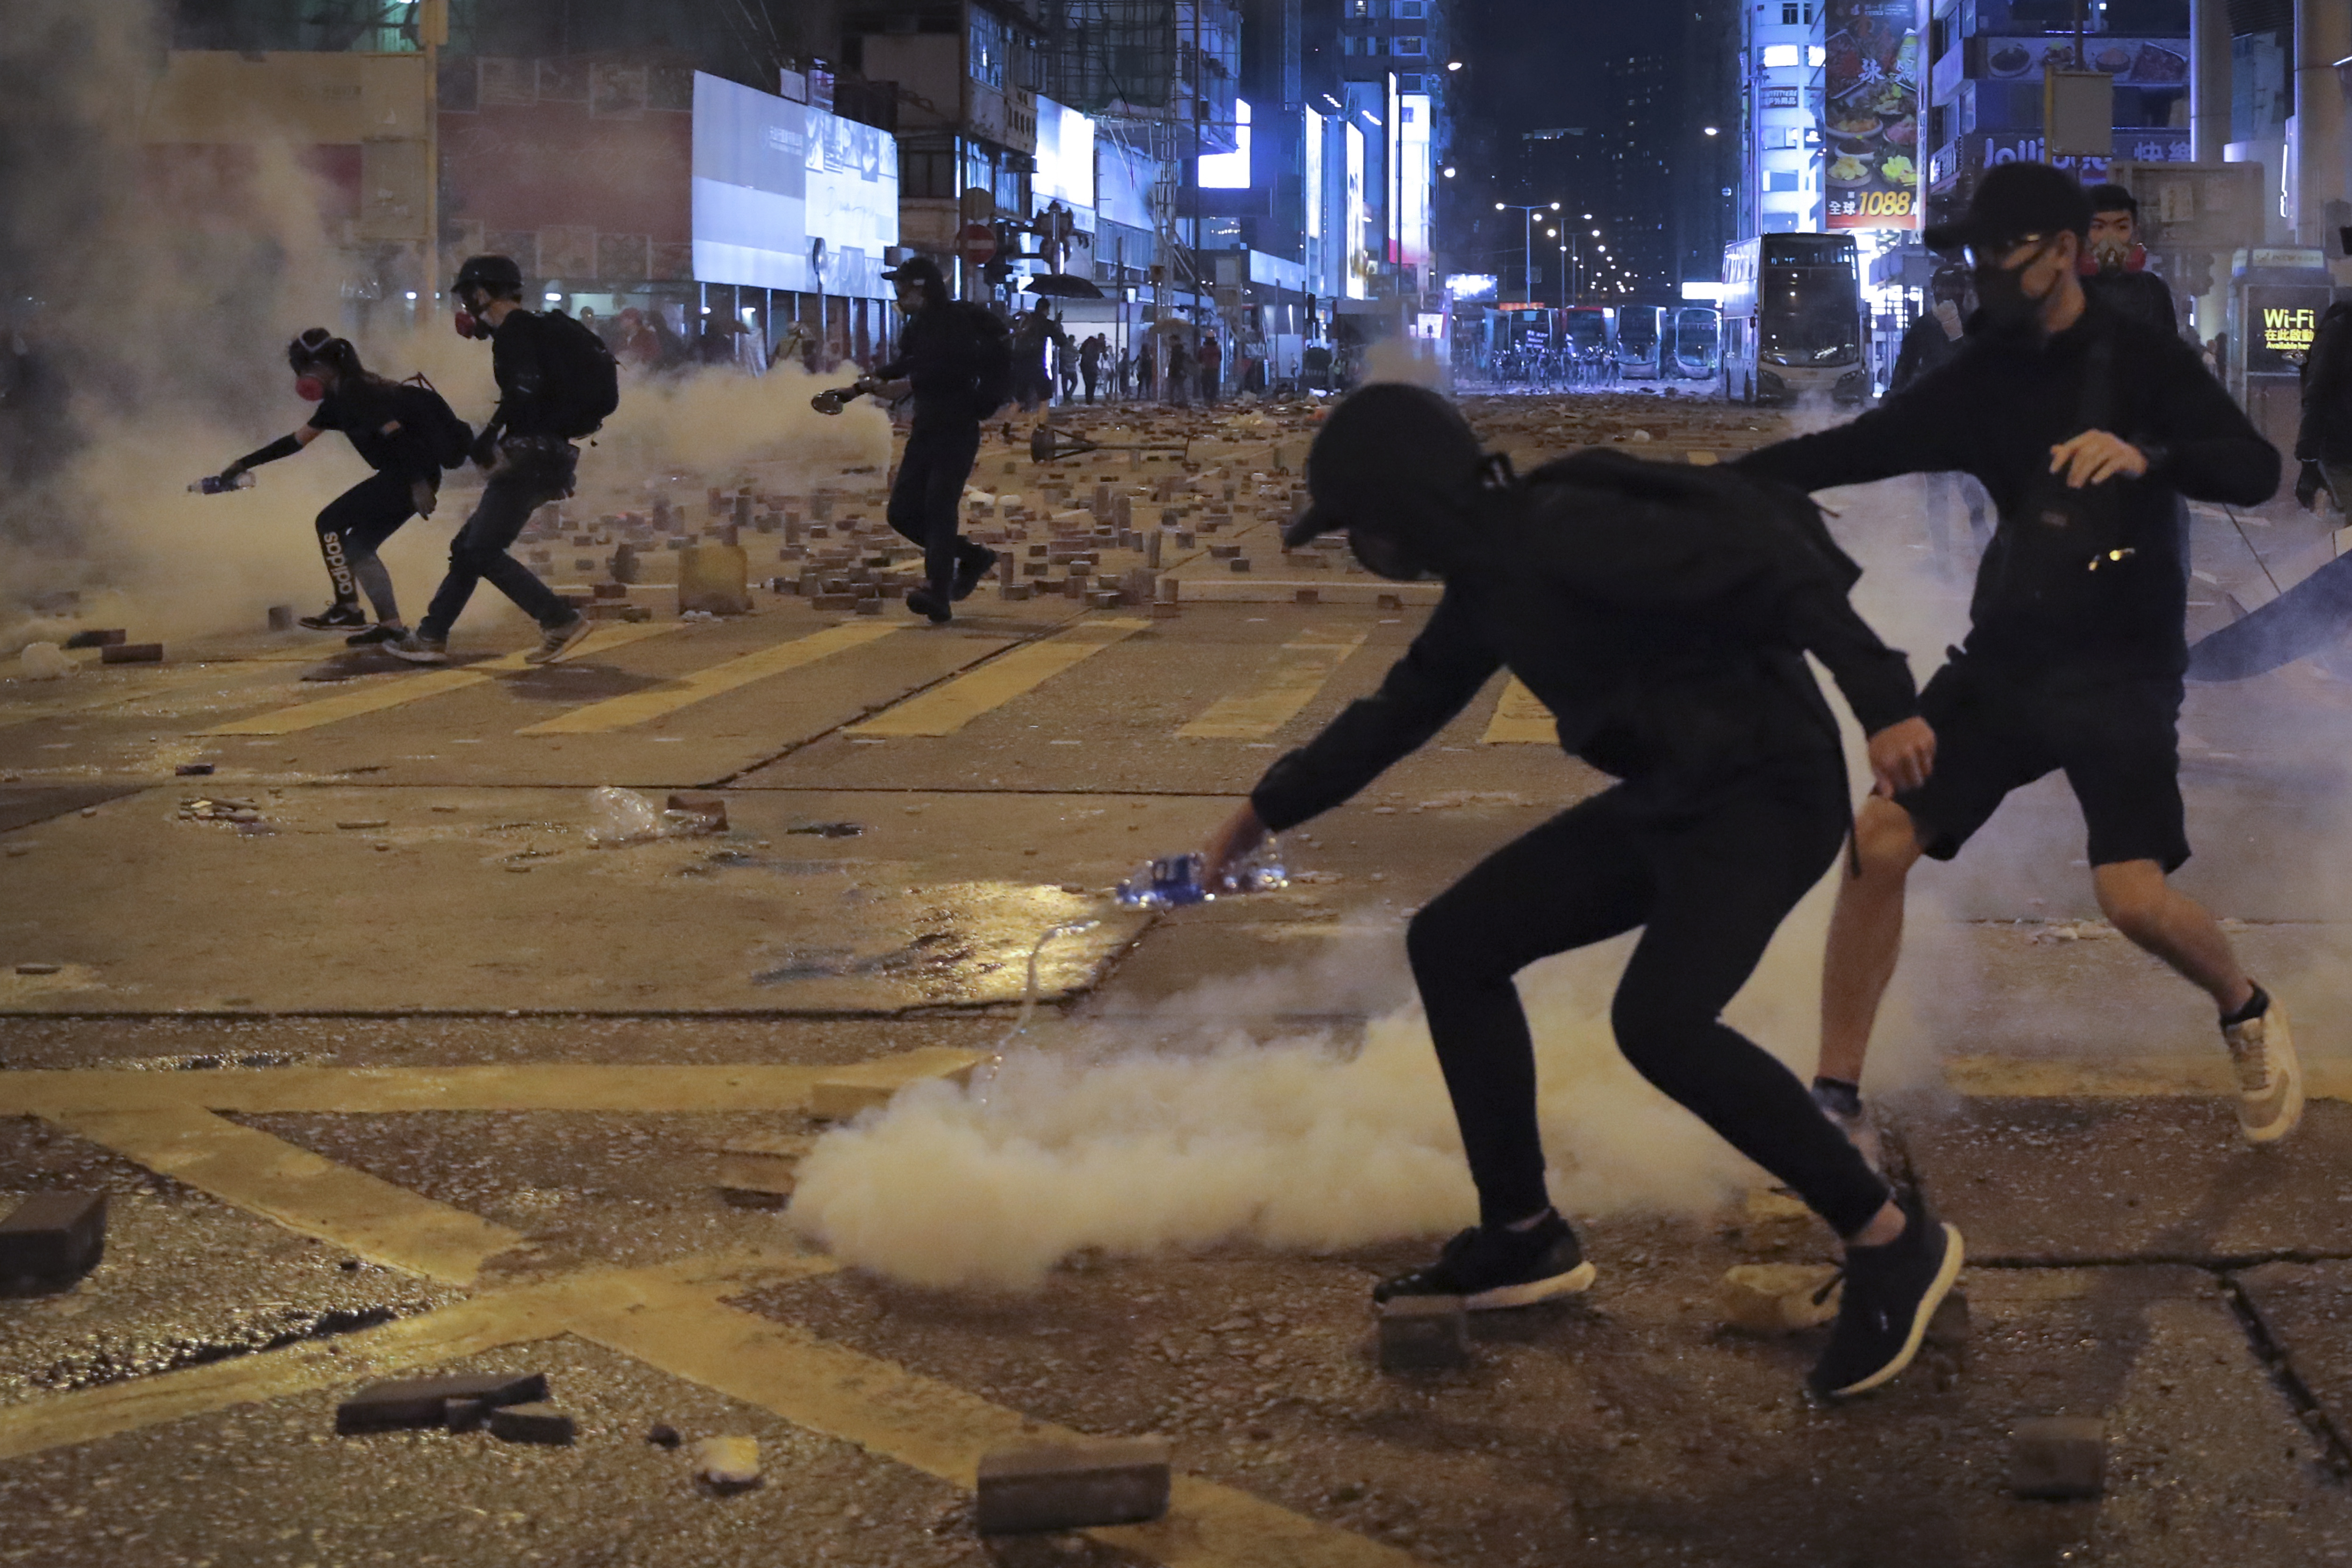 A protester pours water onto a tear gas canister fired by riot police on a street scattered with bricks, during a protest in Hong Kong, on November 11, 2019